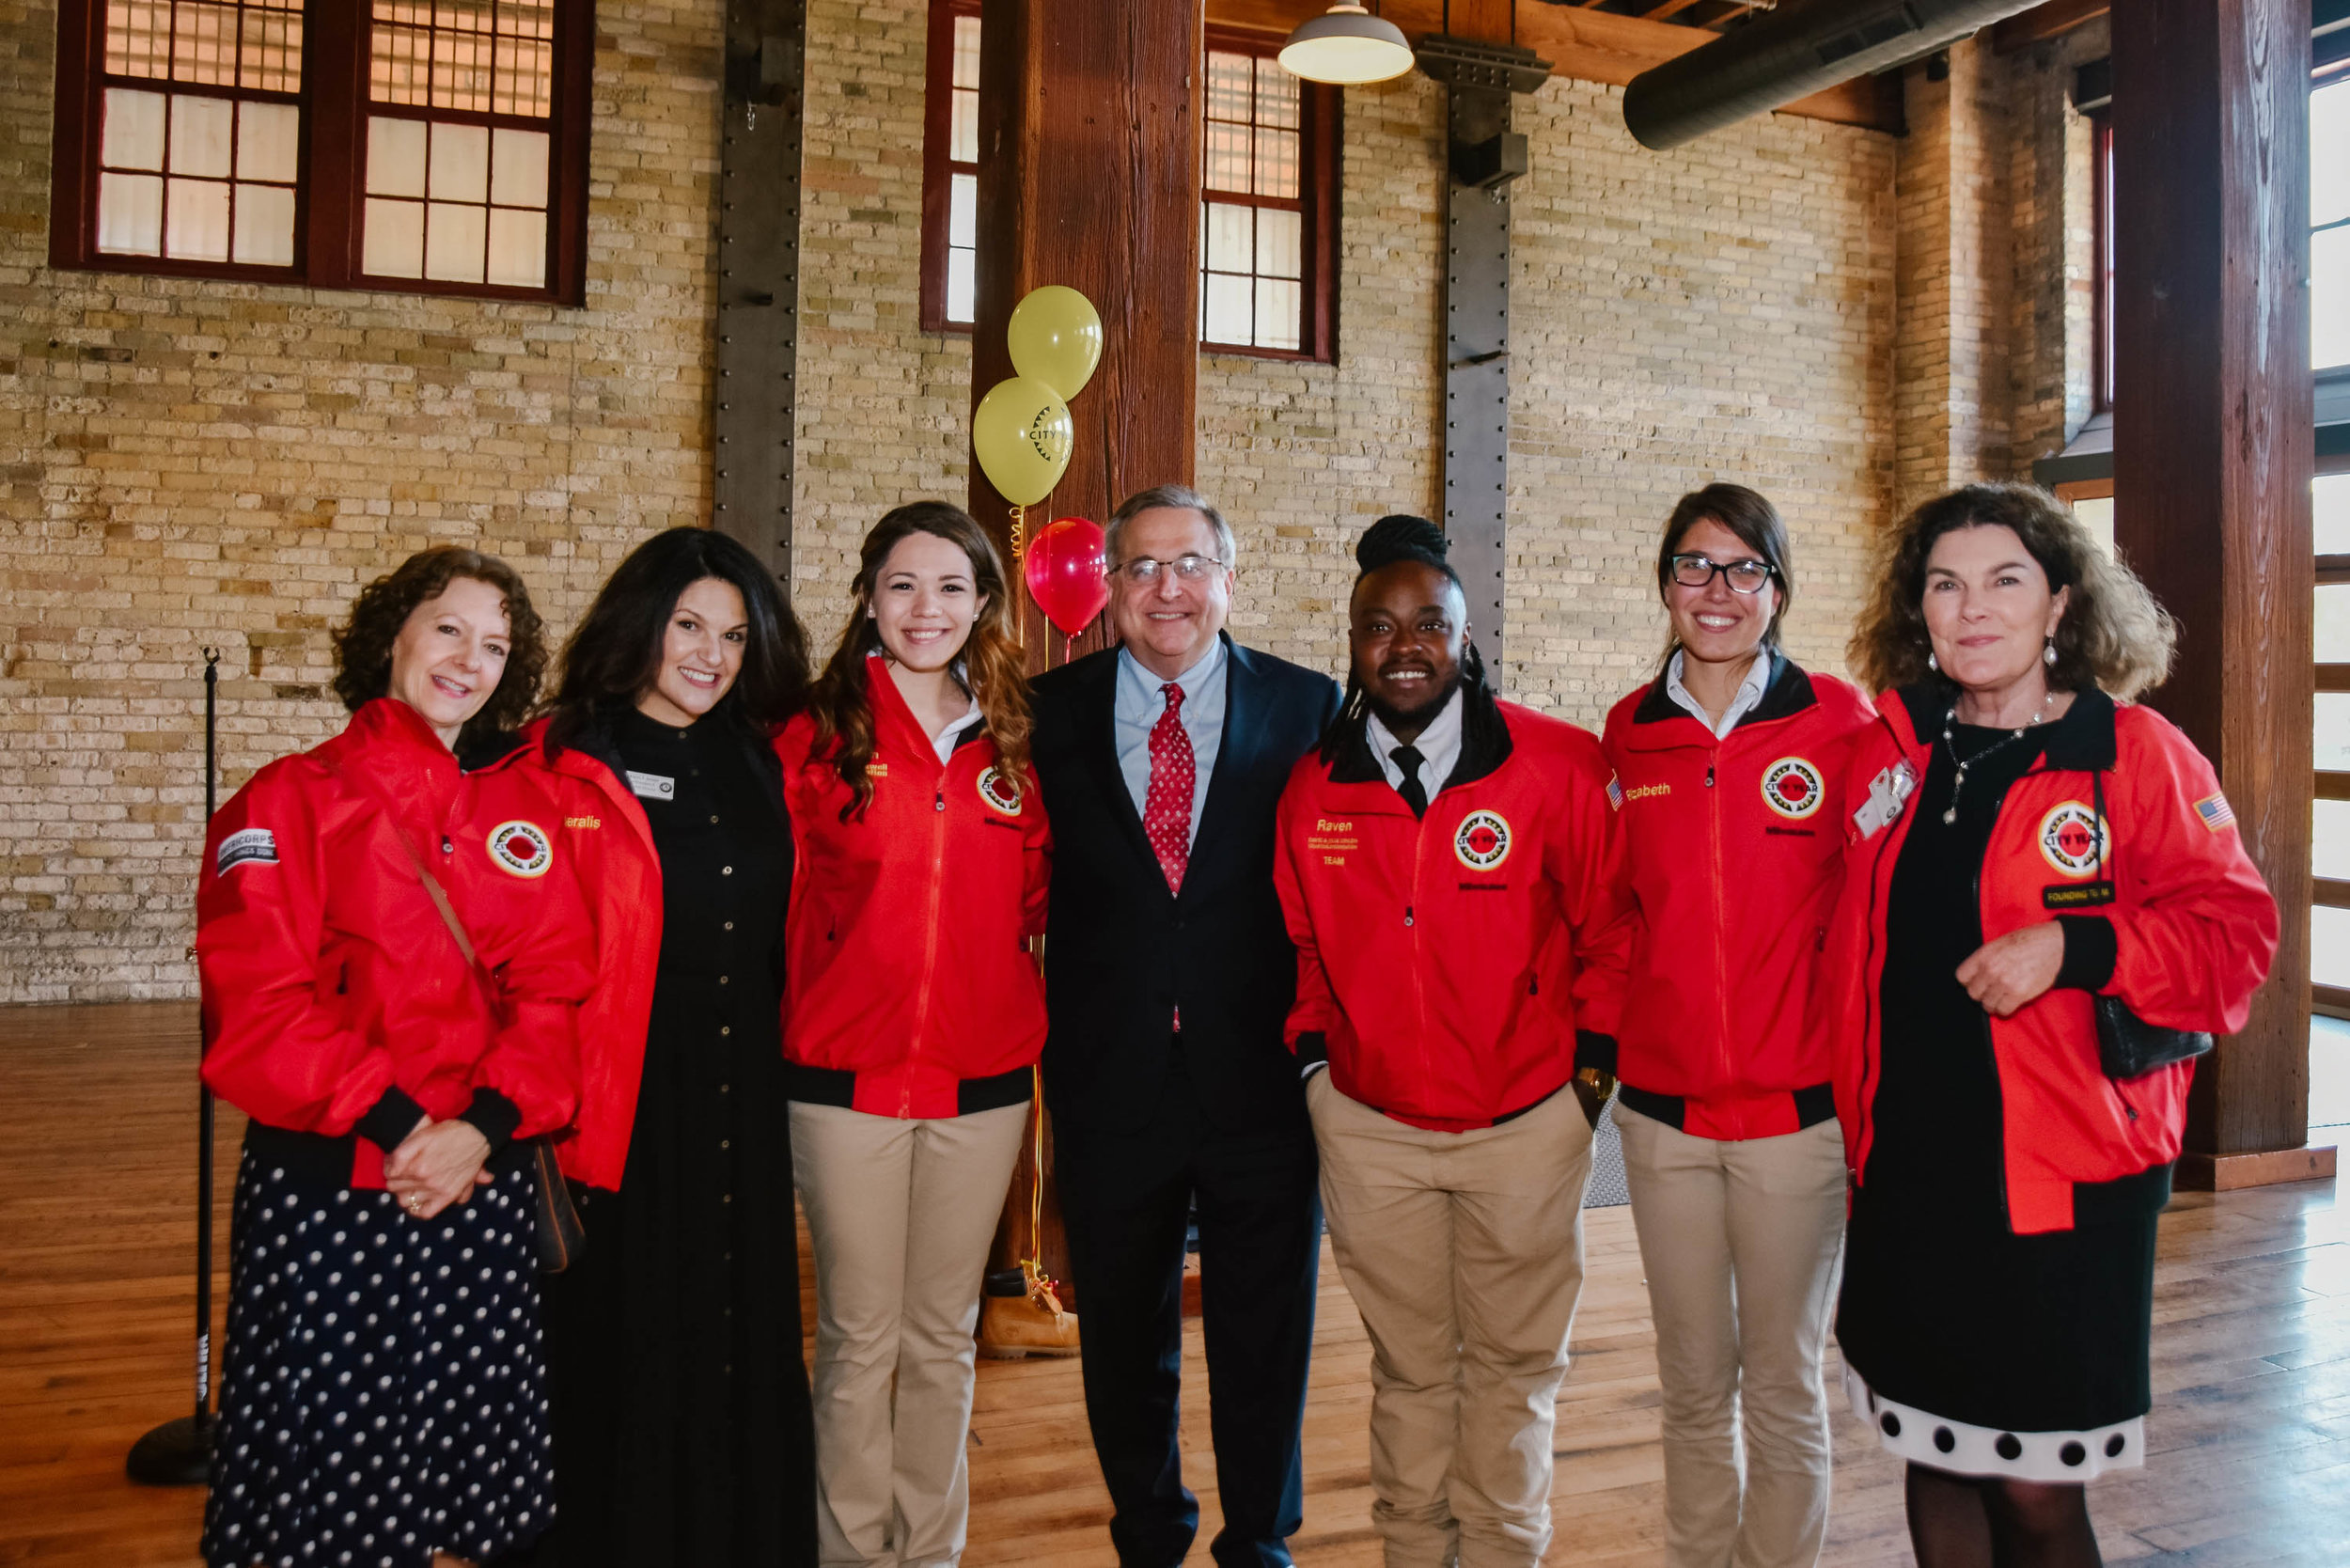 City Year leadership, Board members, and Red Jacket Society Ambassadors